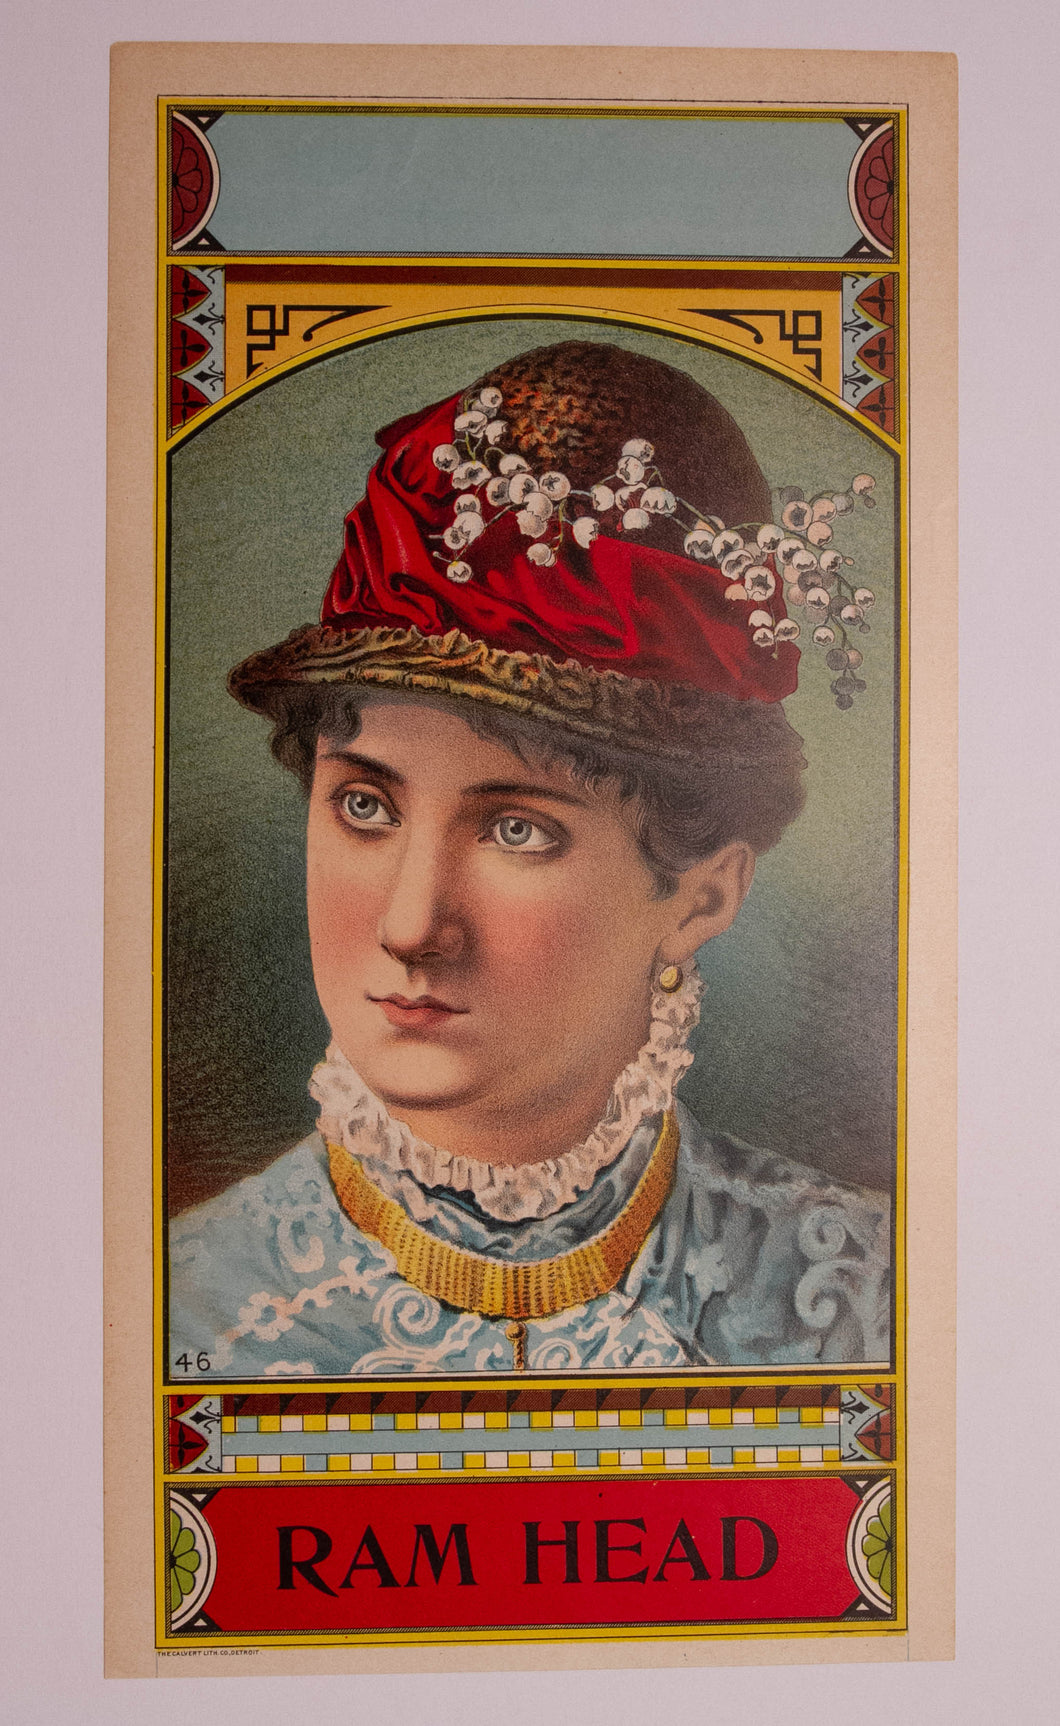 Portrait of Woman, RAM HEAD TOBACCO Caddy Label, Old, Vintage - TheBoxSF